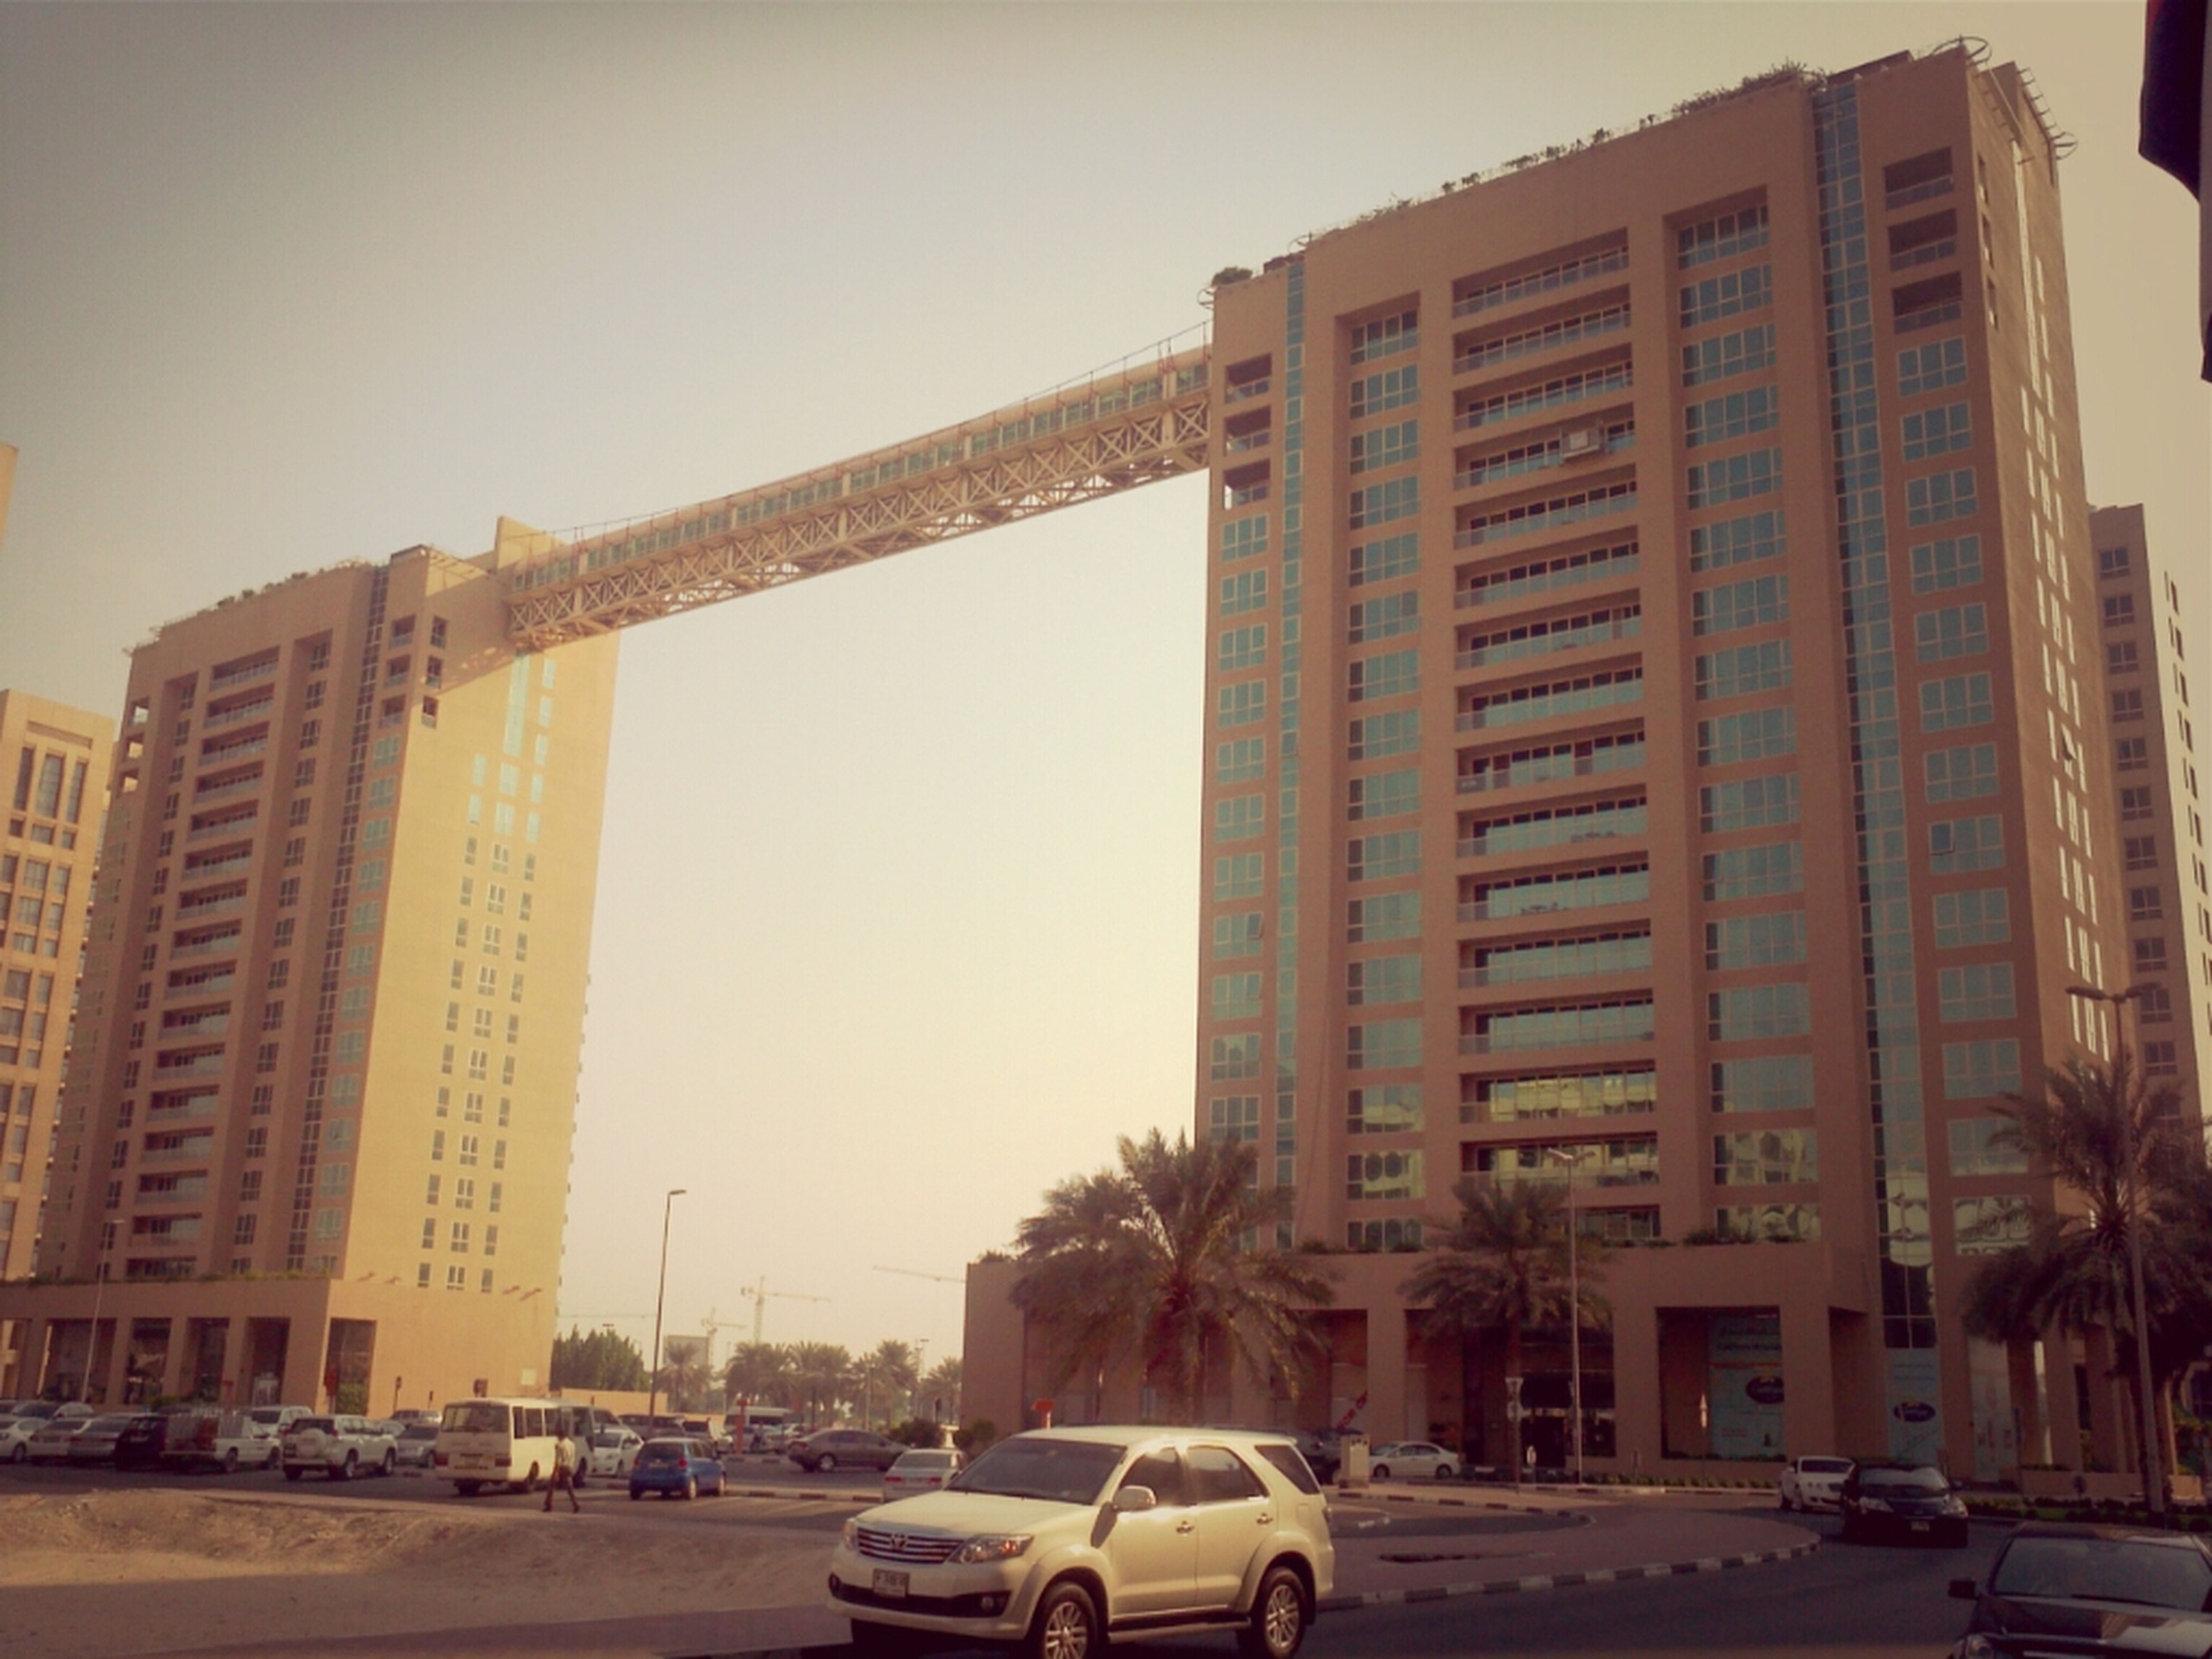 building exterior, architecture, built structure, car, land vehicle, transportation, mode of transport, city, street, clear sky, building, road, city life, parking, city street, incidental people, stationary, parked, street light, low angle view